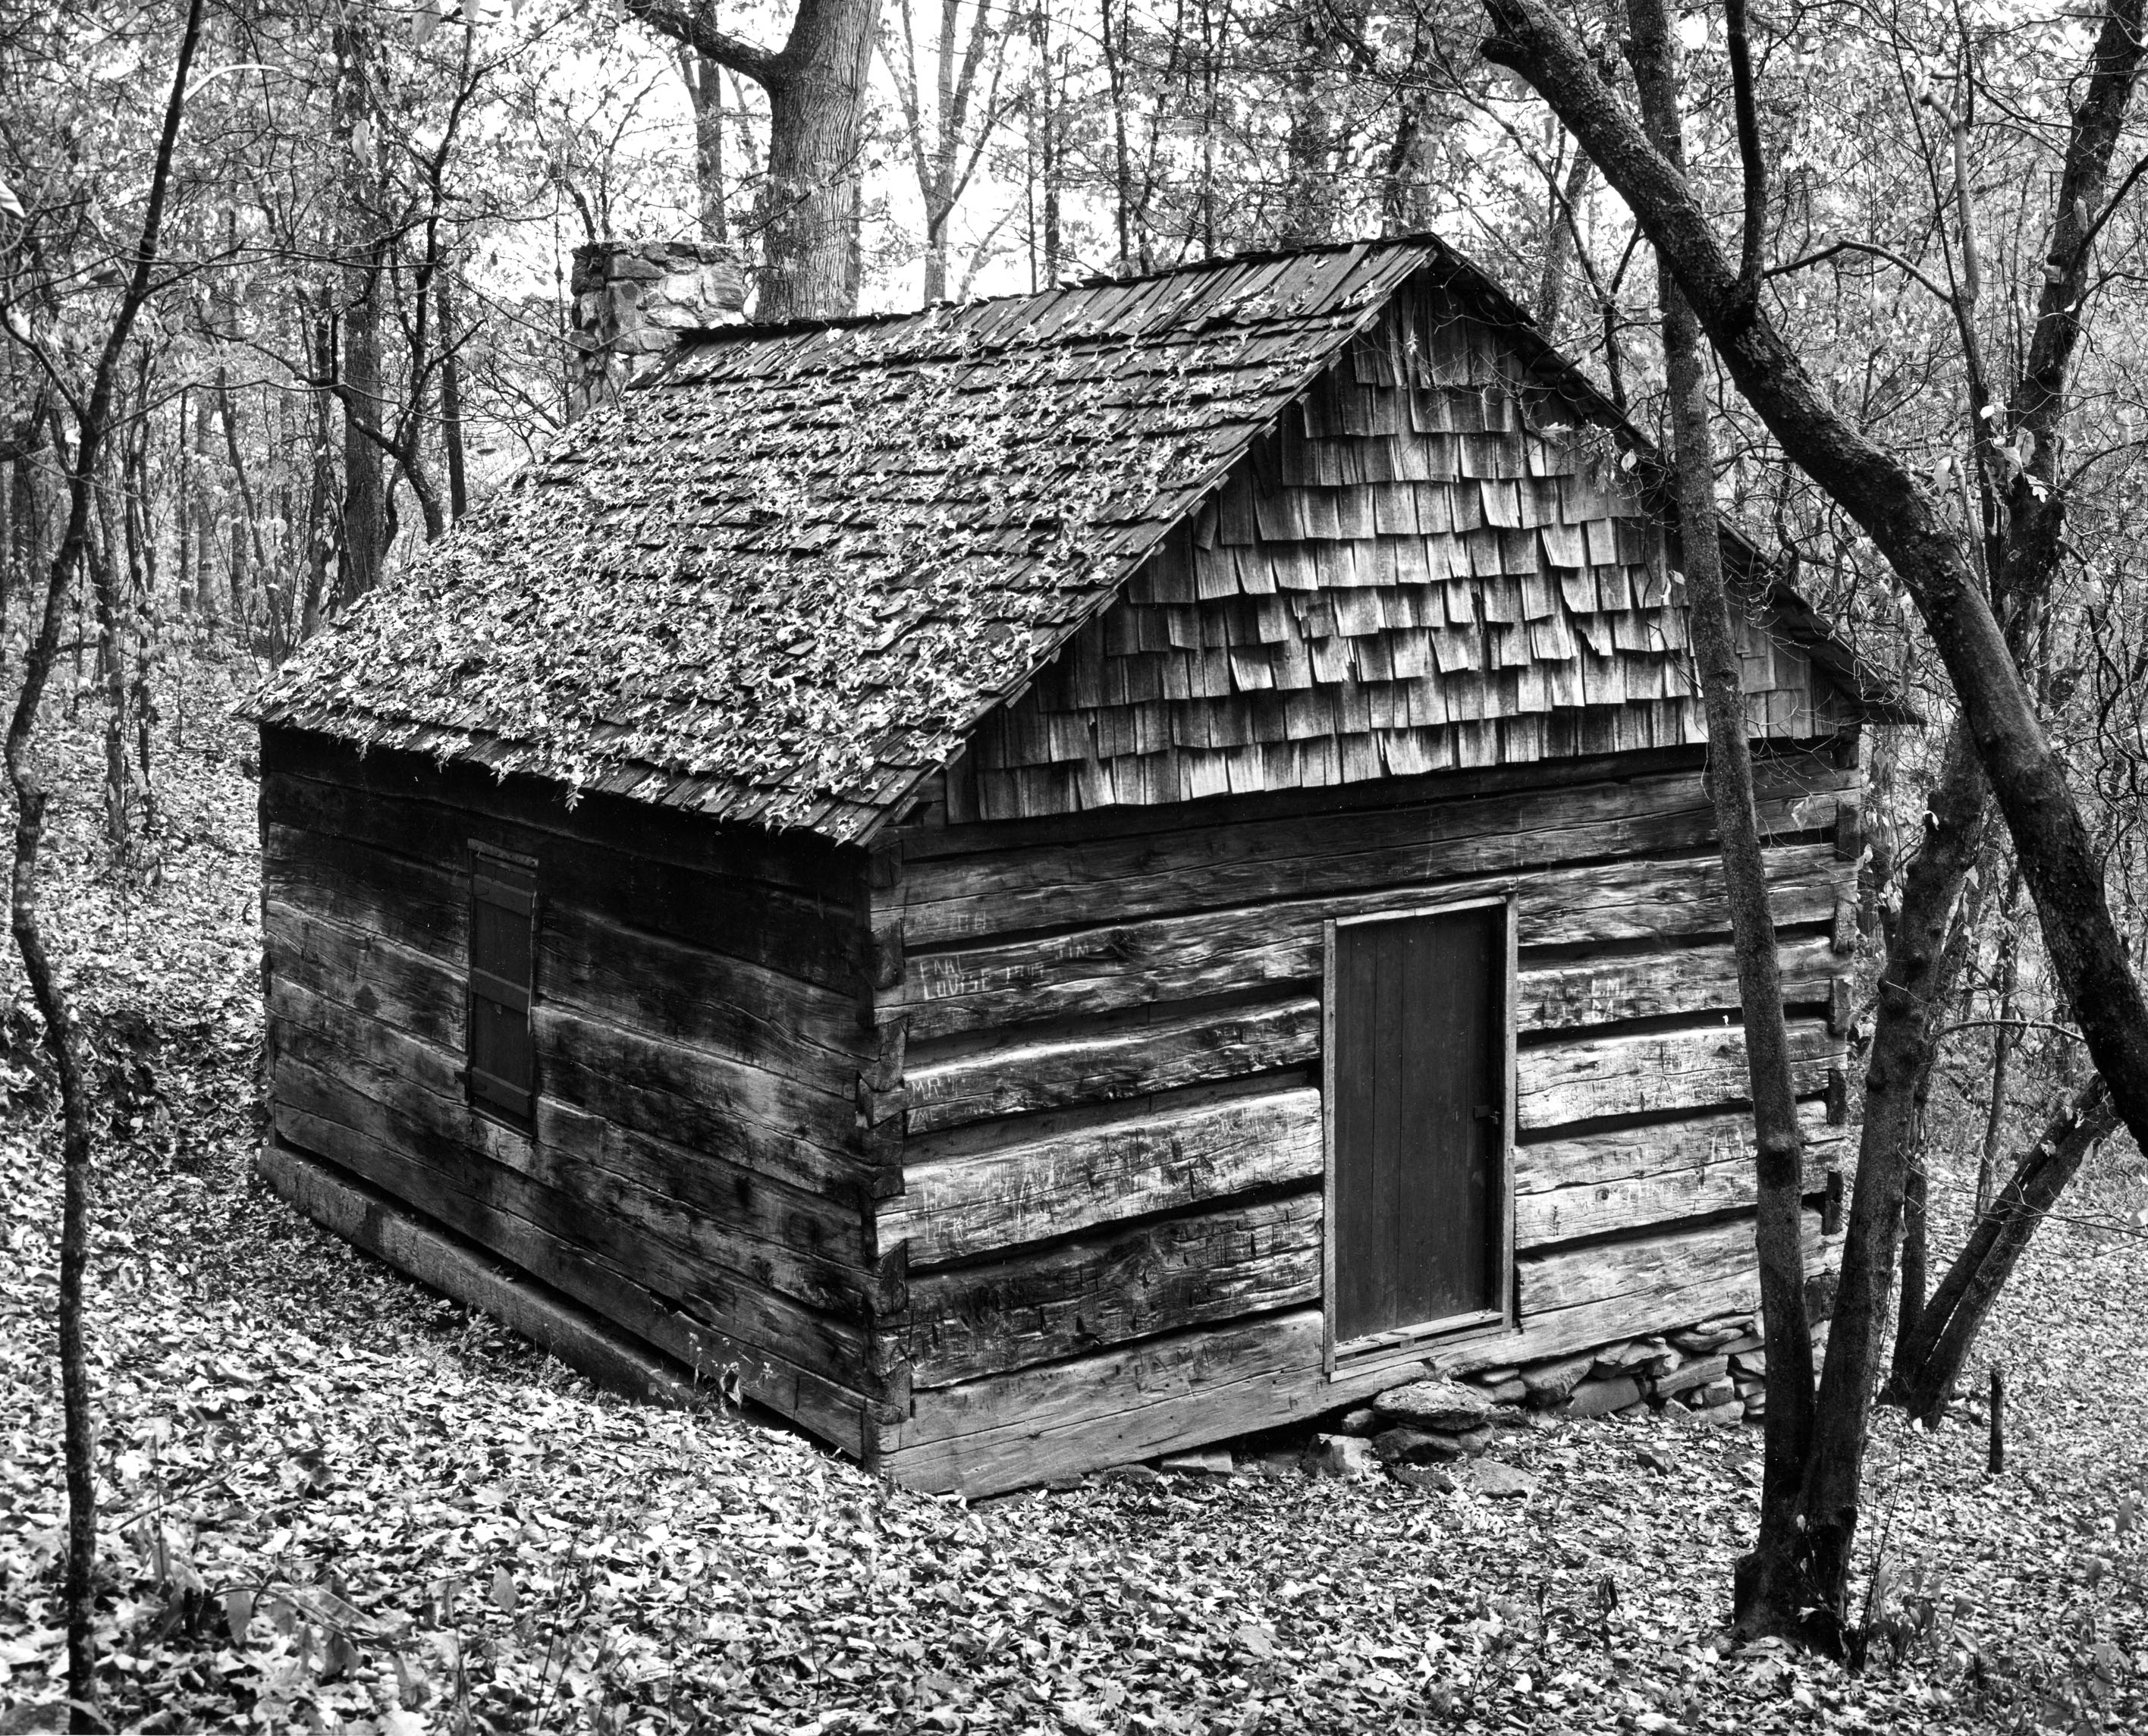 The Heritage Cabin in its original location prior to being moved to campus.